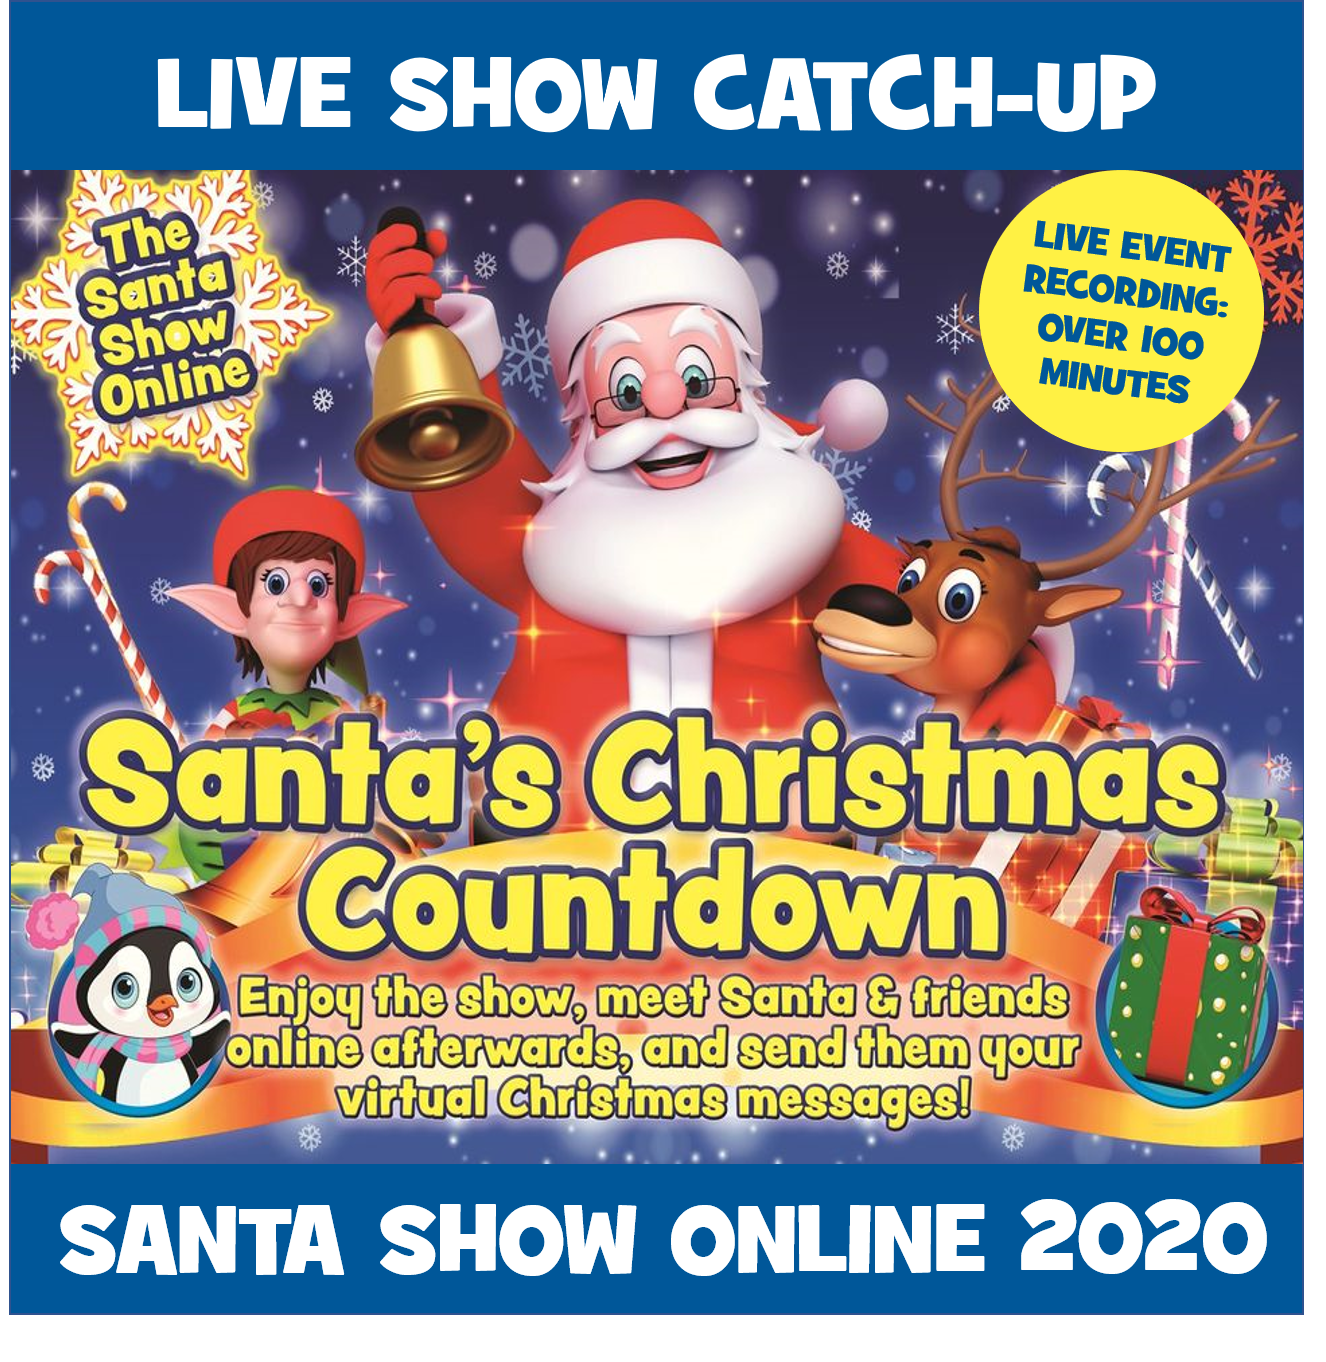 Catch Up: Santa Show Online Live 2020